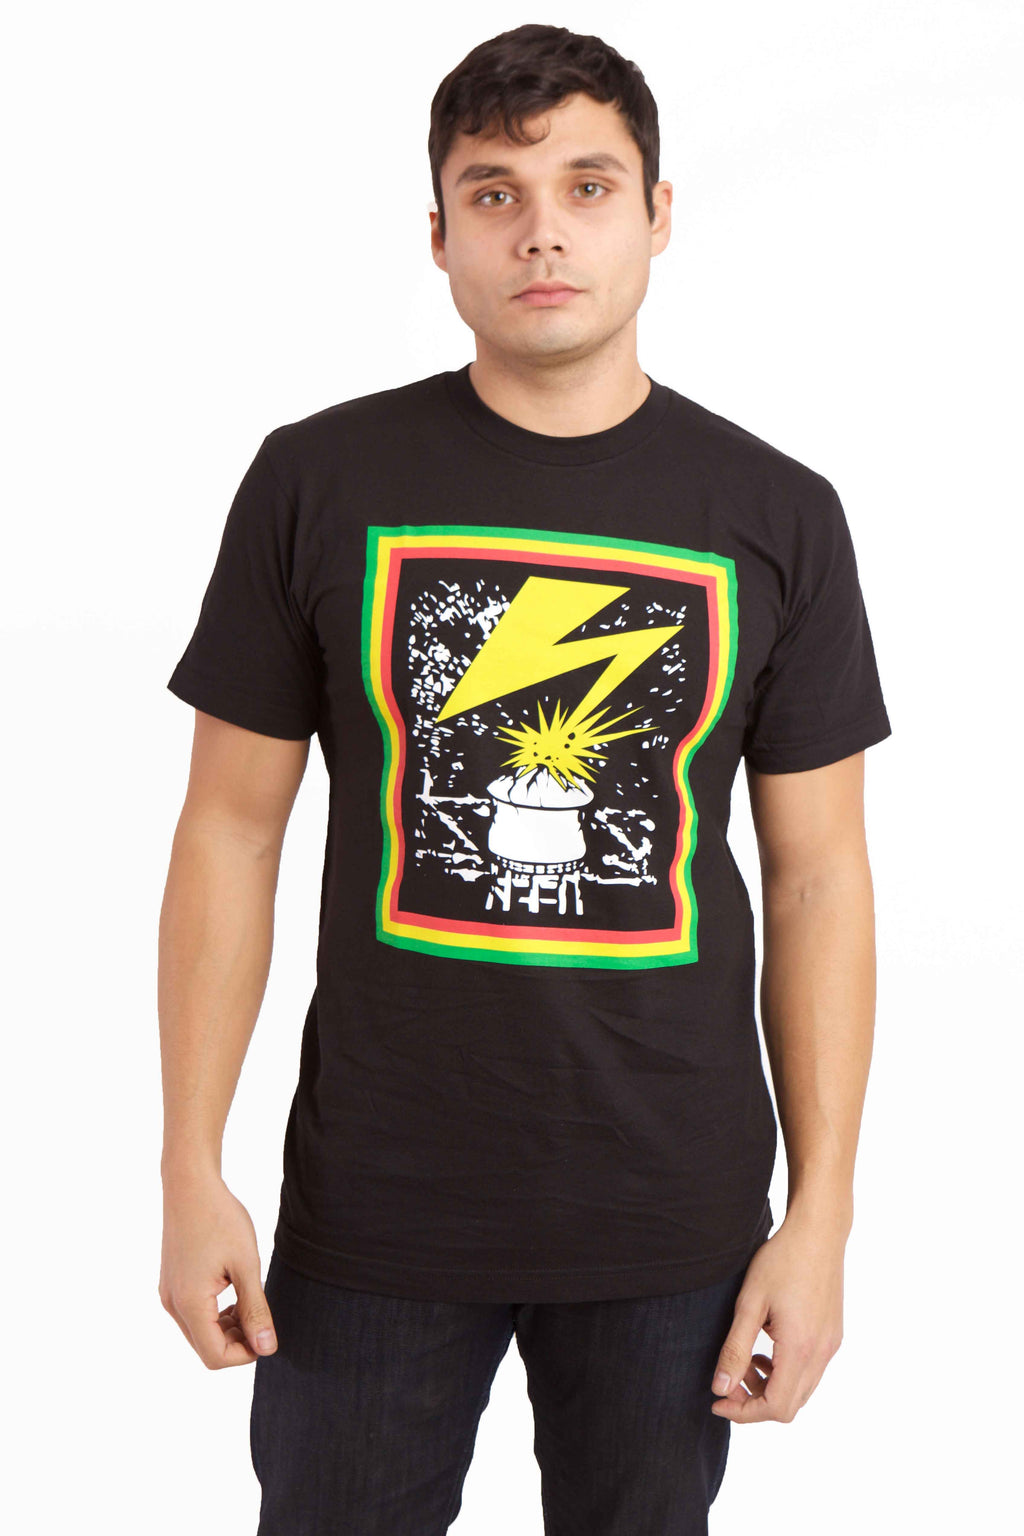 Lightening Graphic T-shirt Front Image 1